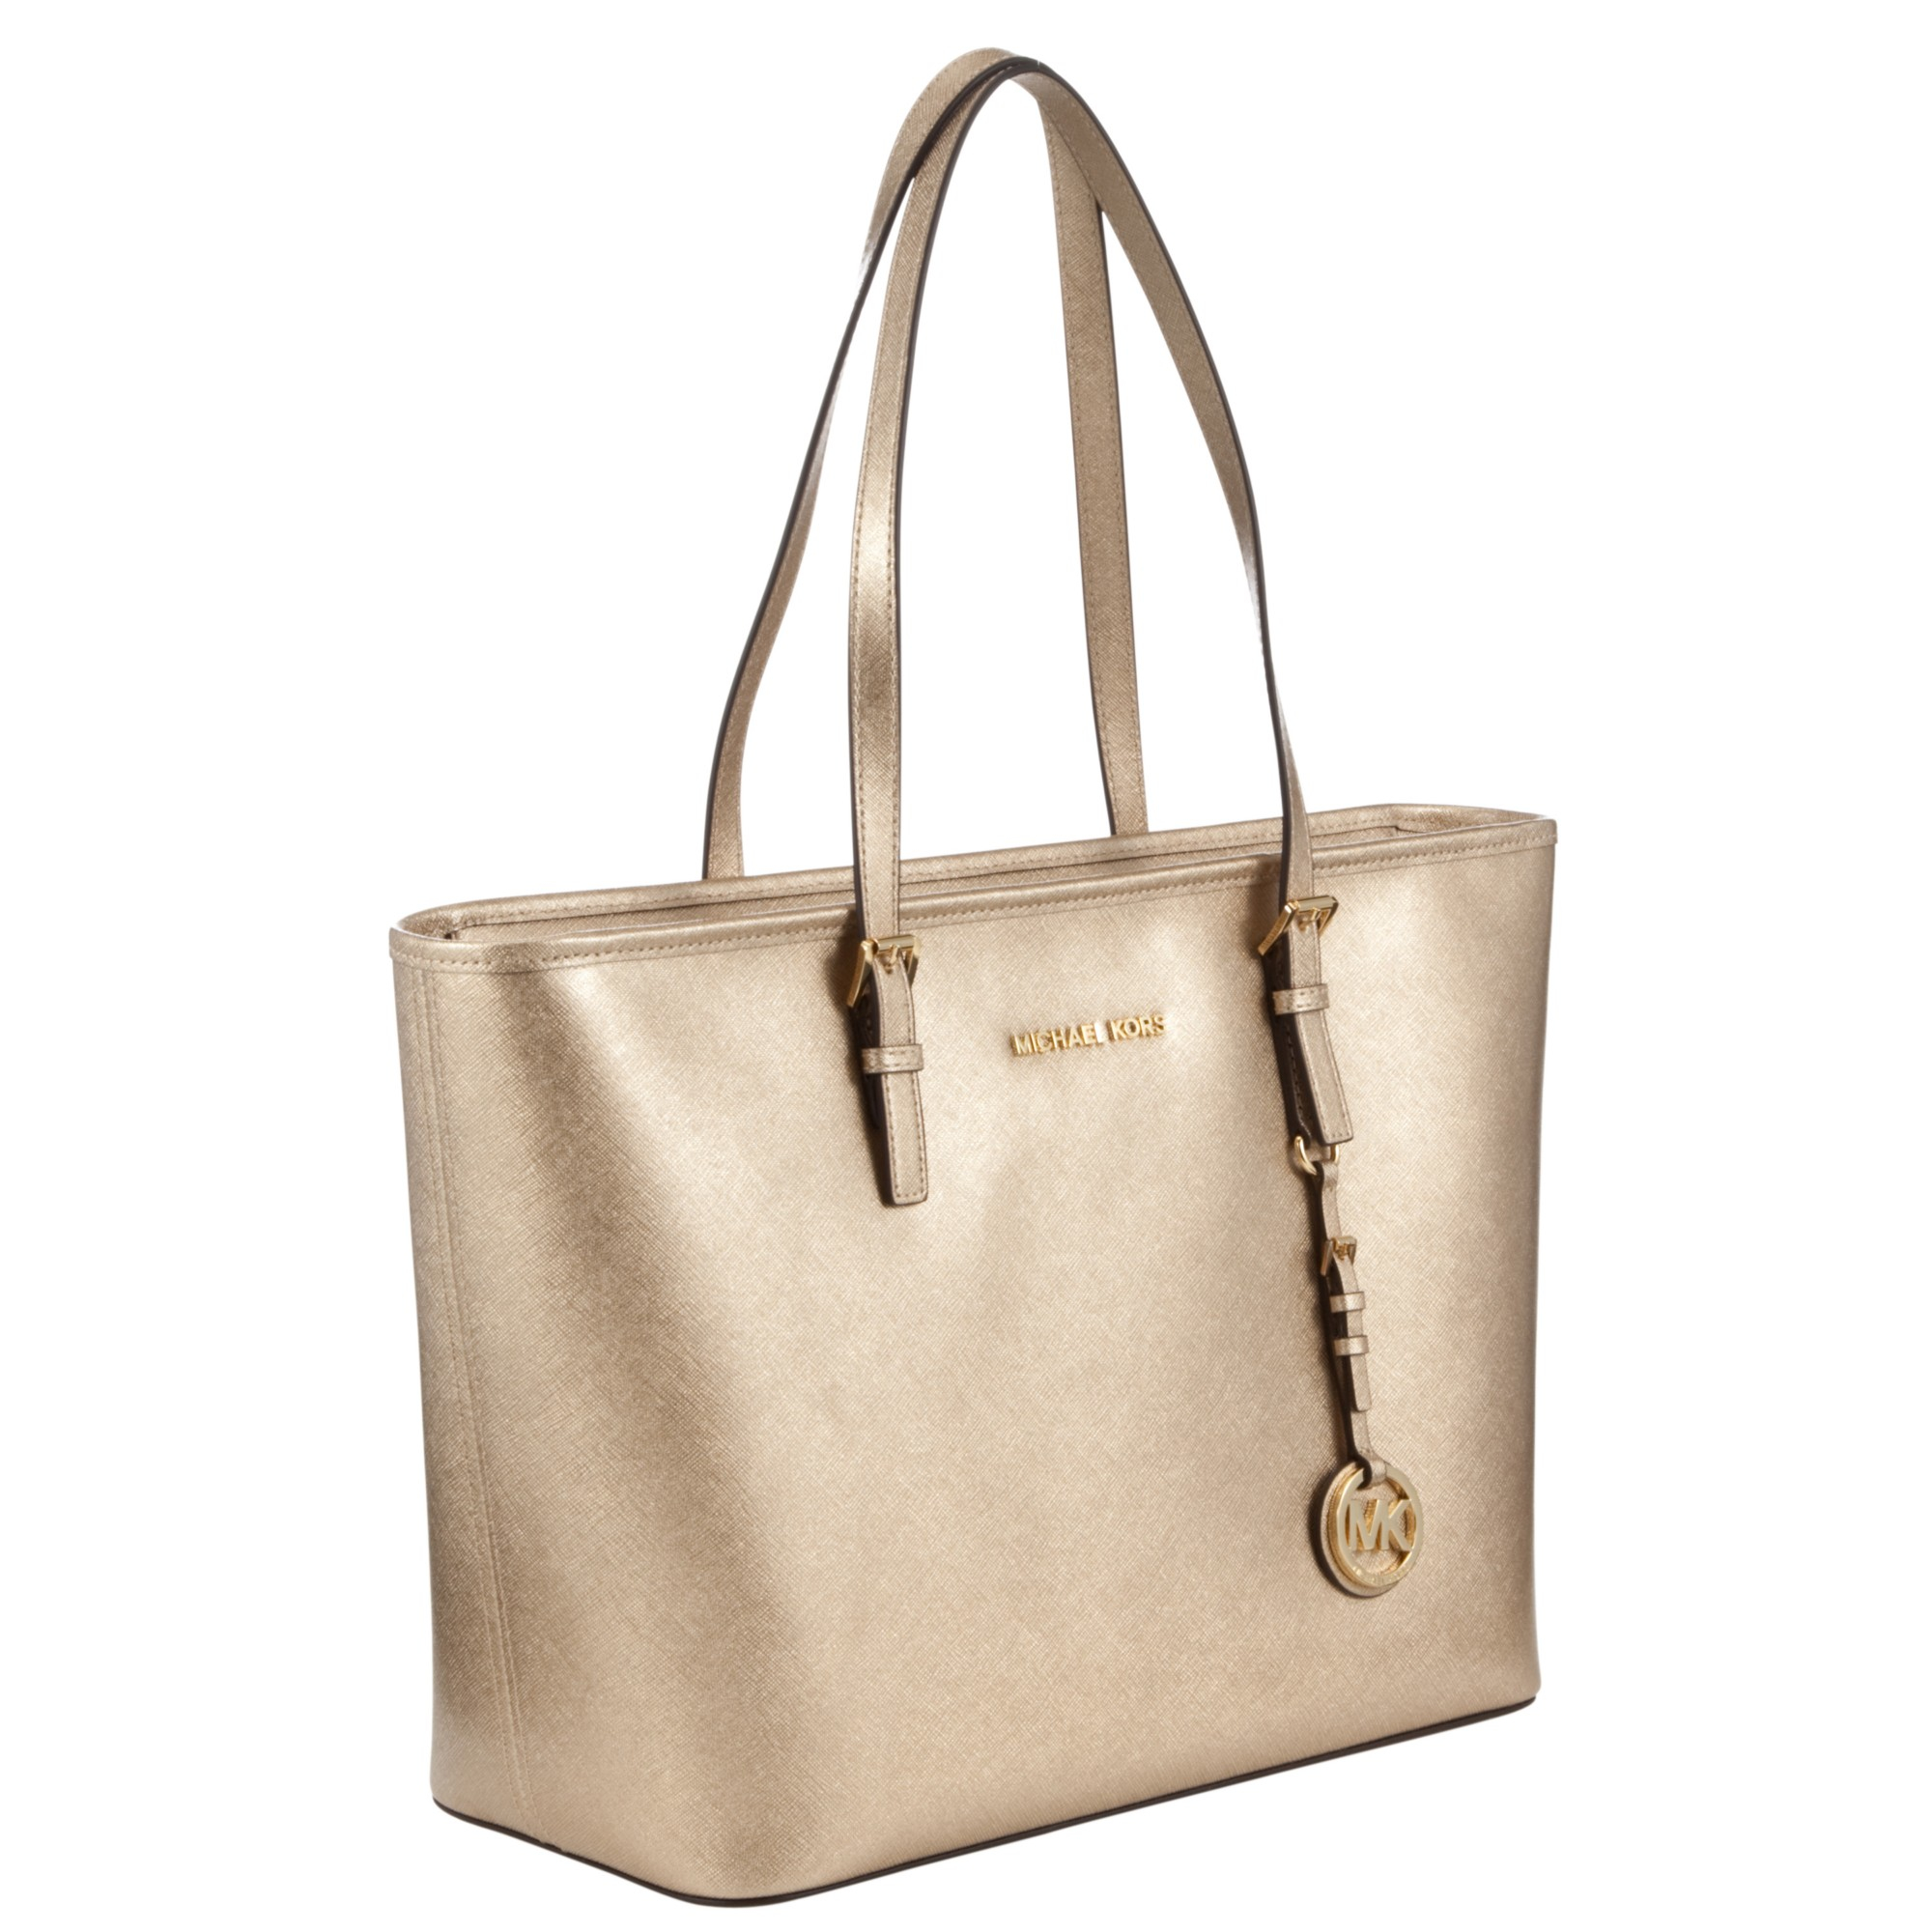 Michael kors bags in dubai - Michael Kors Pale Gold Handbag